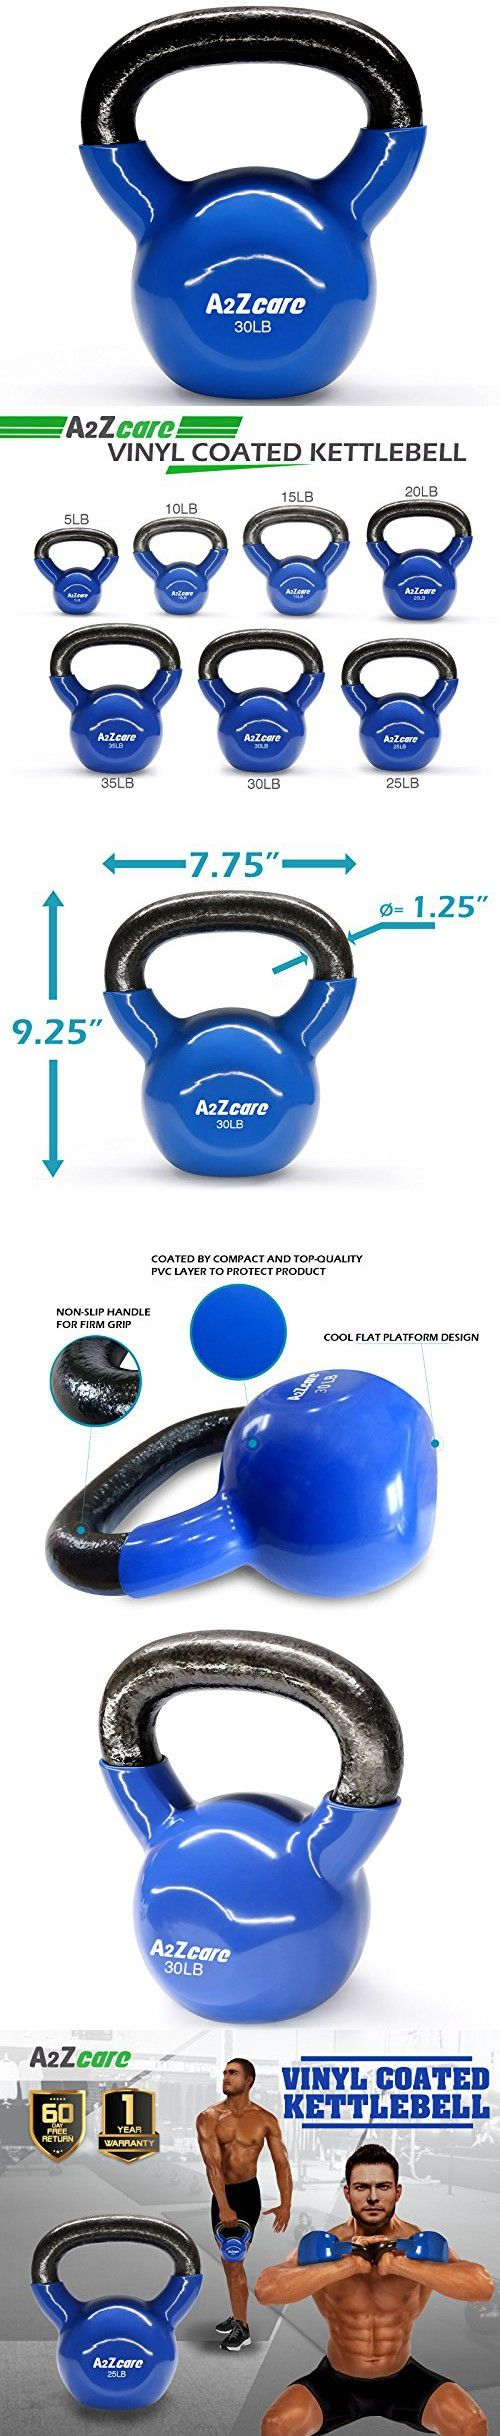 A2ZCare Vinyl Coated Kettlebell For Cross Training, Swings, Body Workout And Muscle Exercise - 30lbs